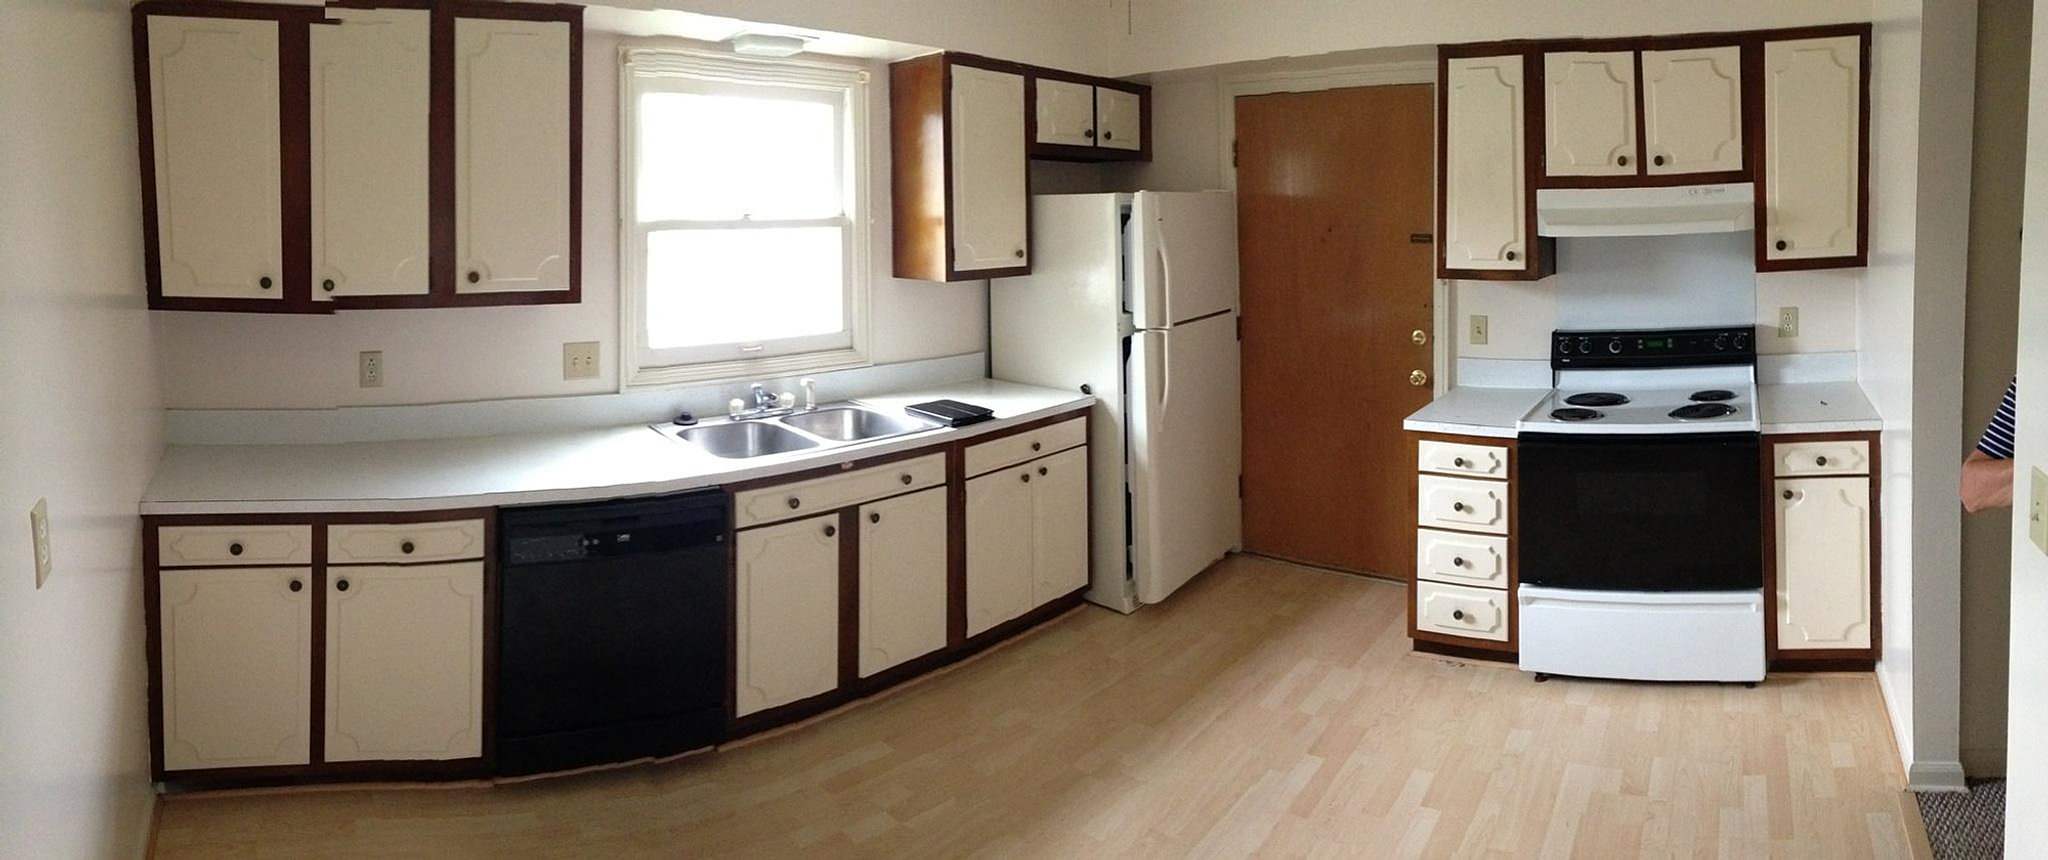 Apt Kitchen Lincoln Village Apartments Beckley Wv Unfurnished Apartments